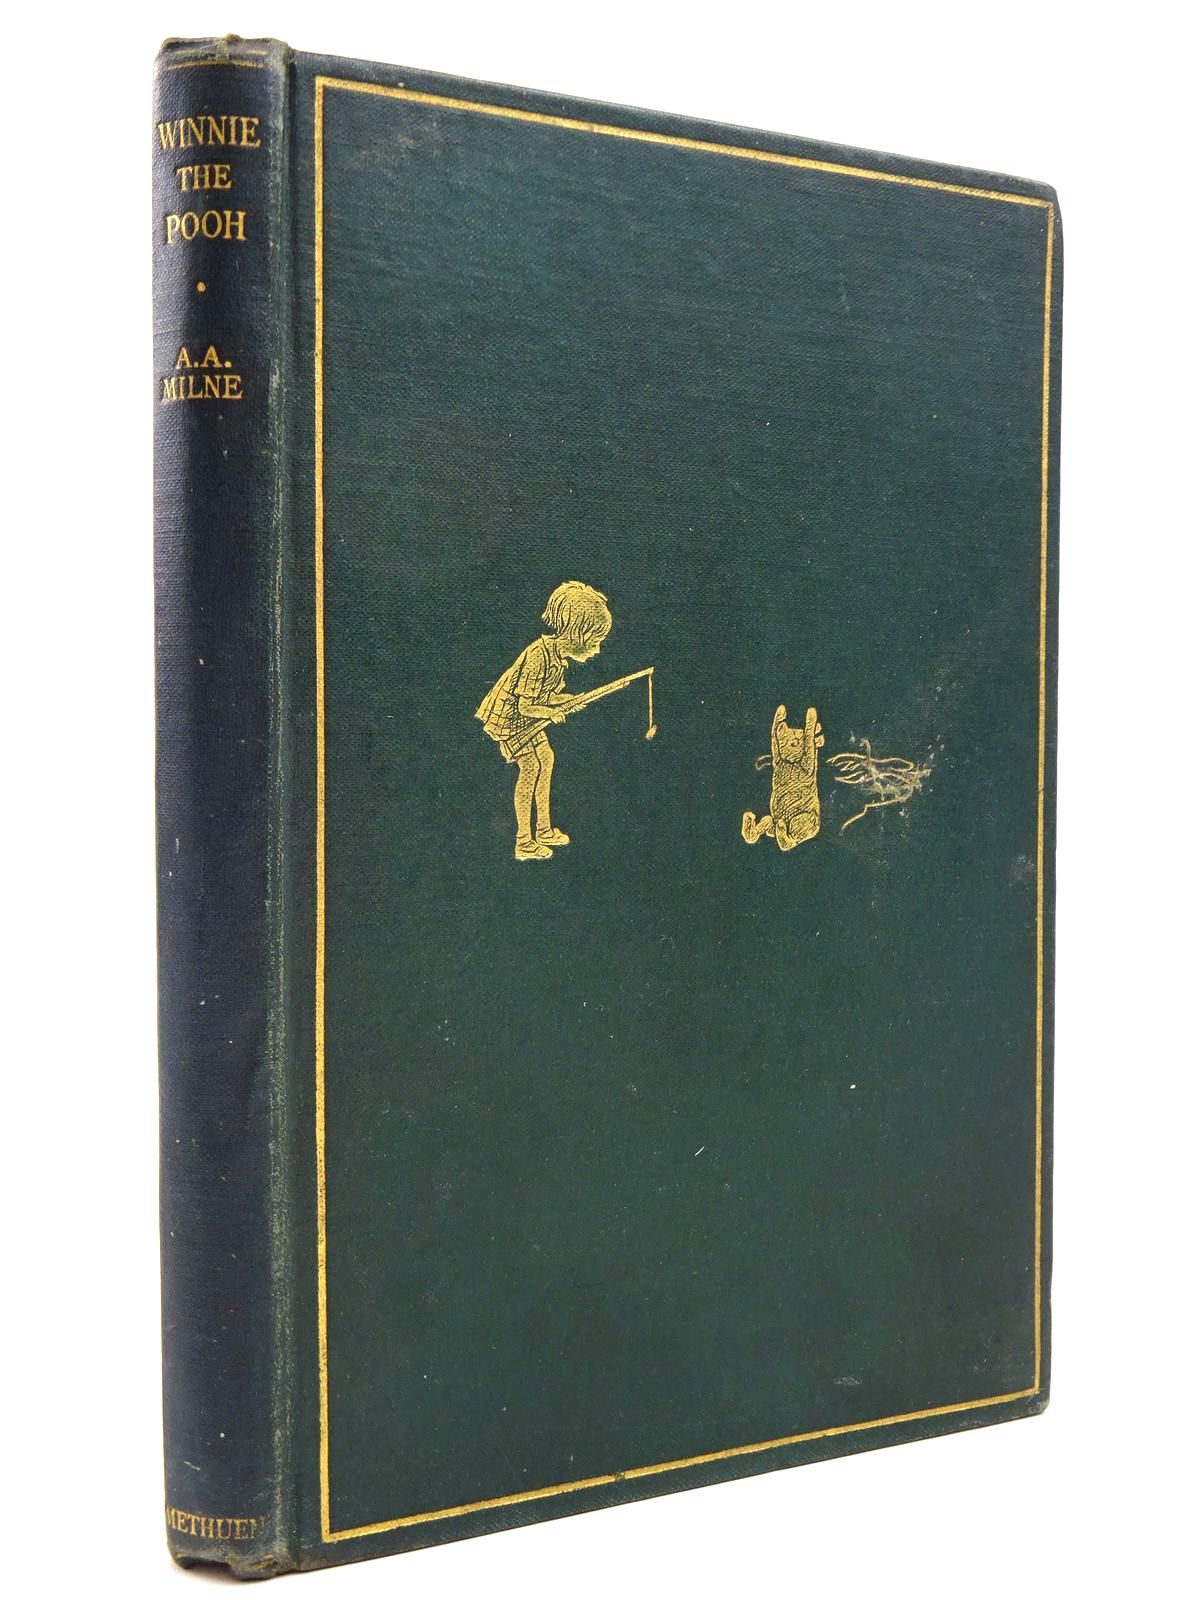 Photo of WINNIE-THE-POOH written by Milne, A.A. illustrated by Shepard, E.H. published by Methuen & Co. Ltd. (STOCK CODE: 2131056)  for sale by Stella & Rose's Books